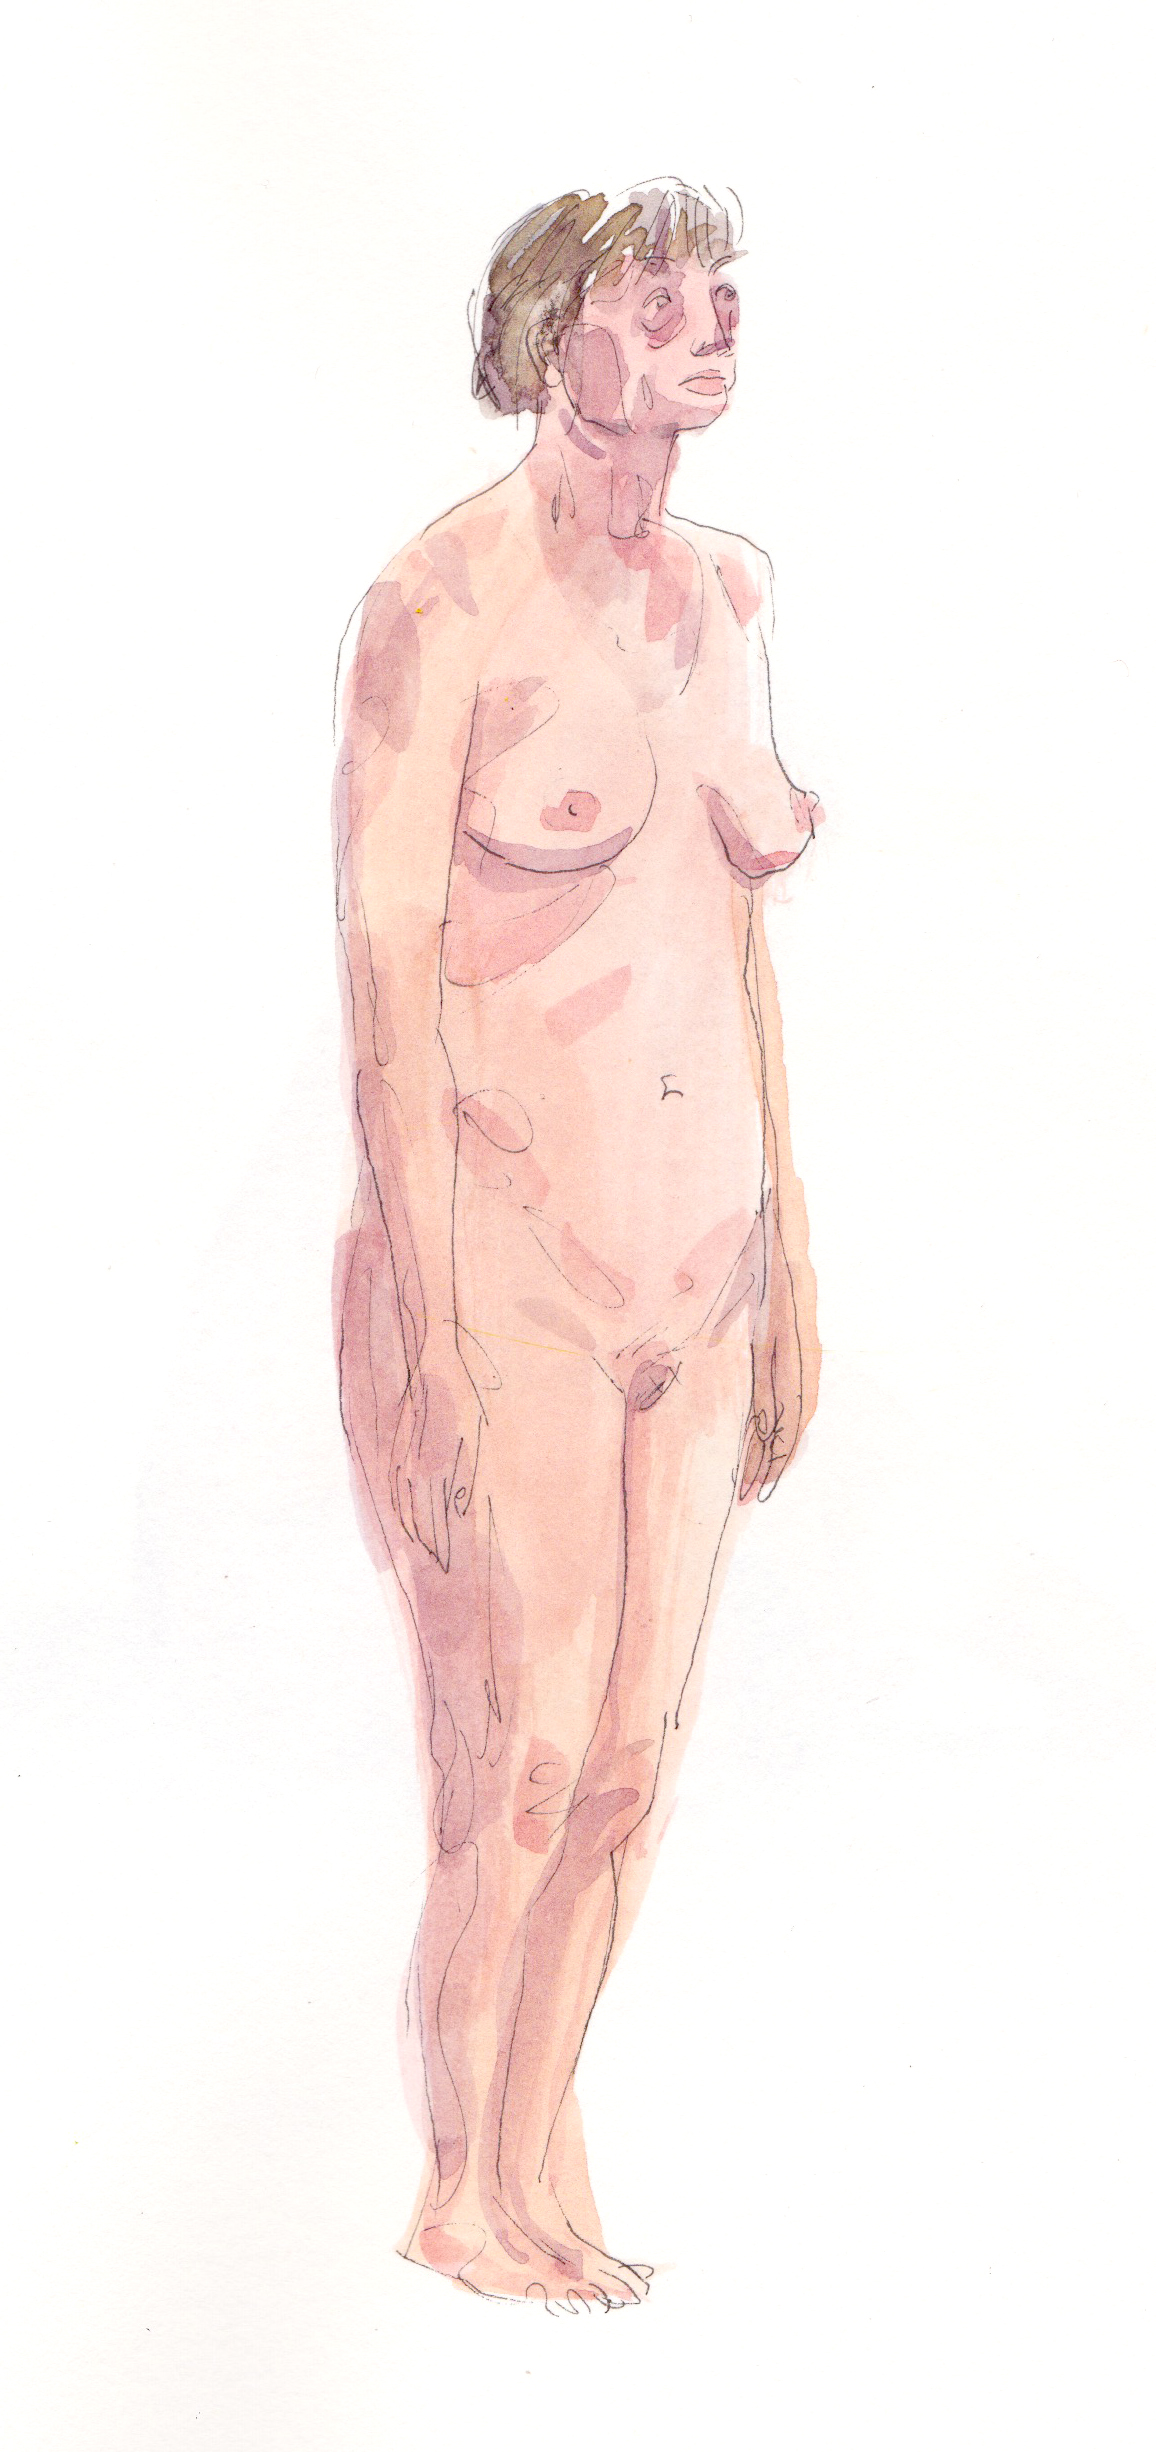 lifedrawing 12